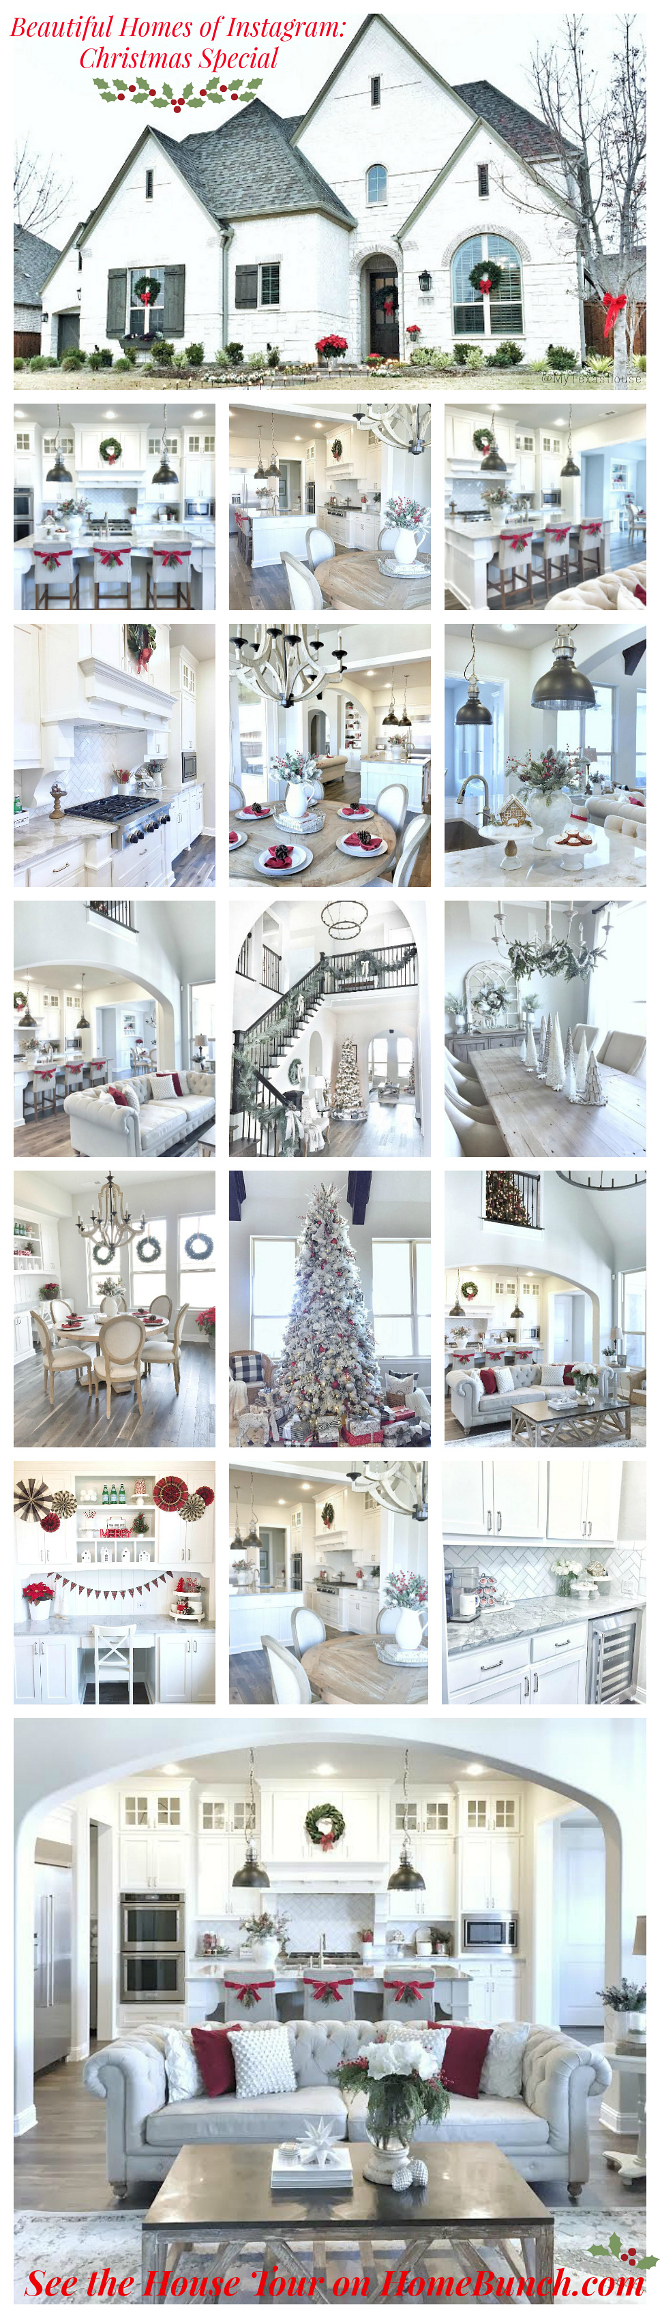 Beautiful Homes of Instagram: Christmas Special. Great Christmas decorating ideas.